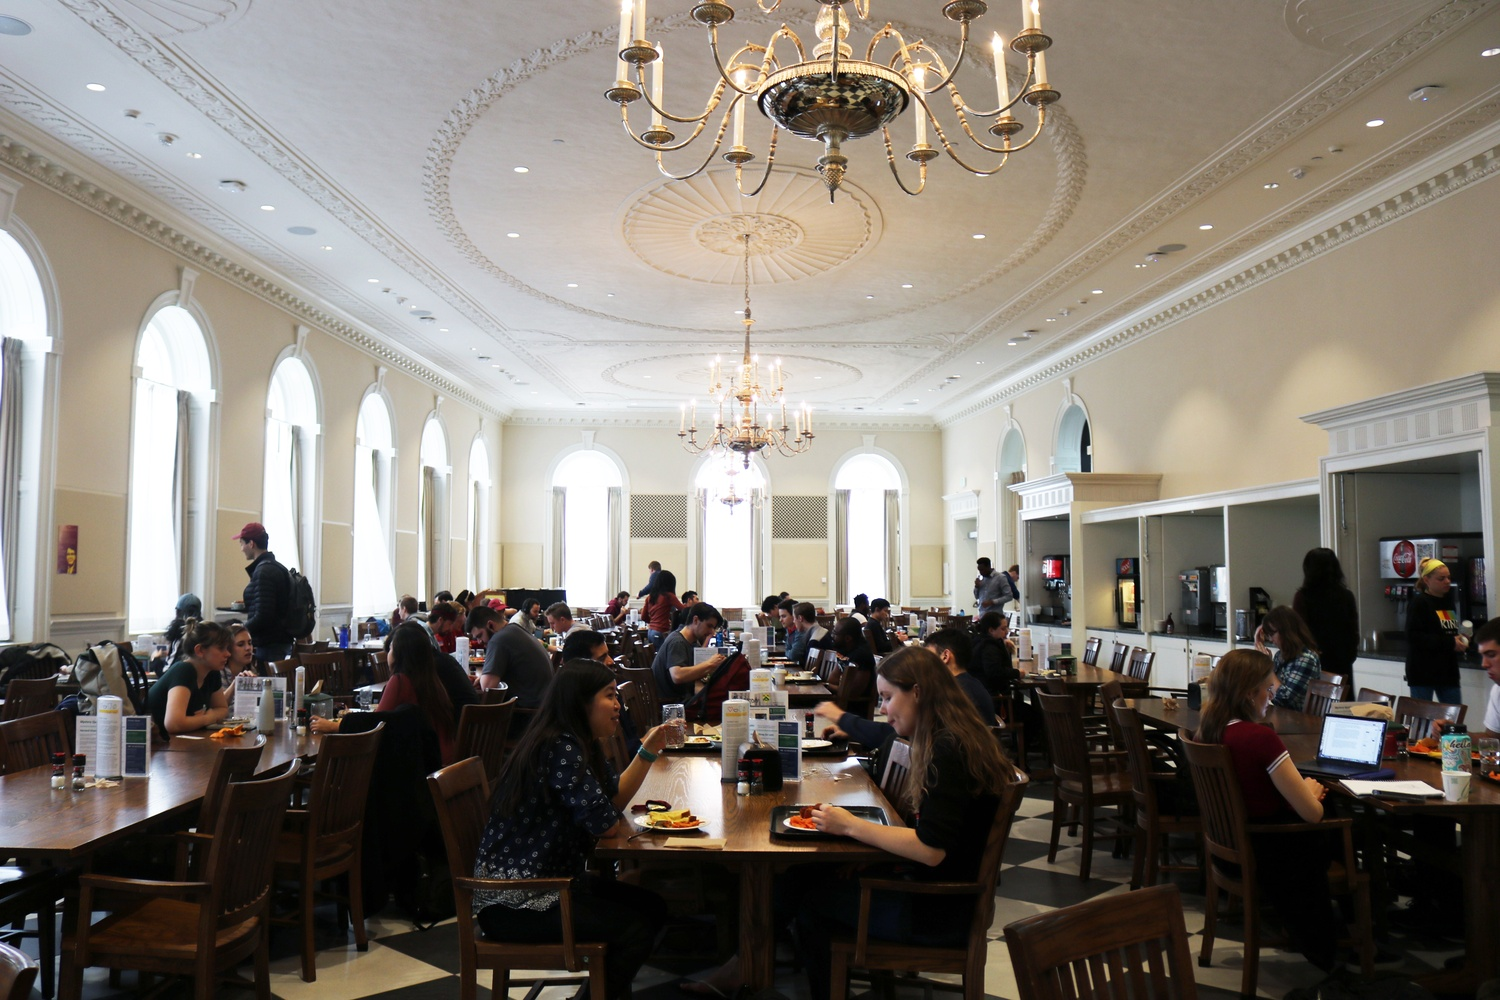 Leverett Dining Hall